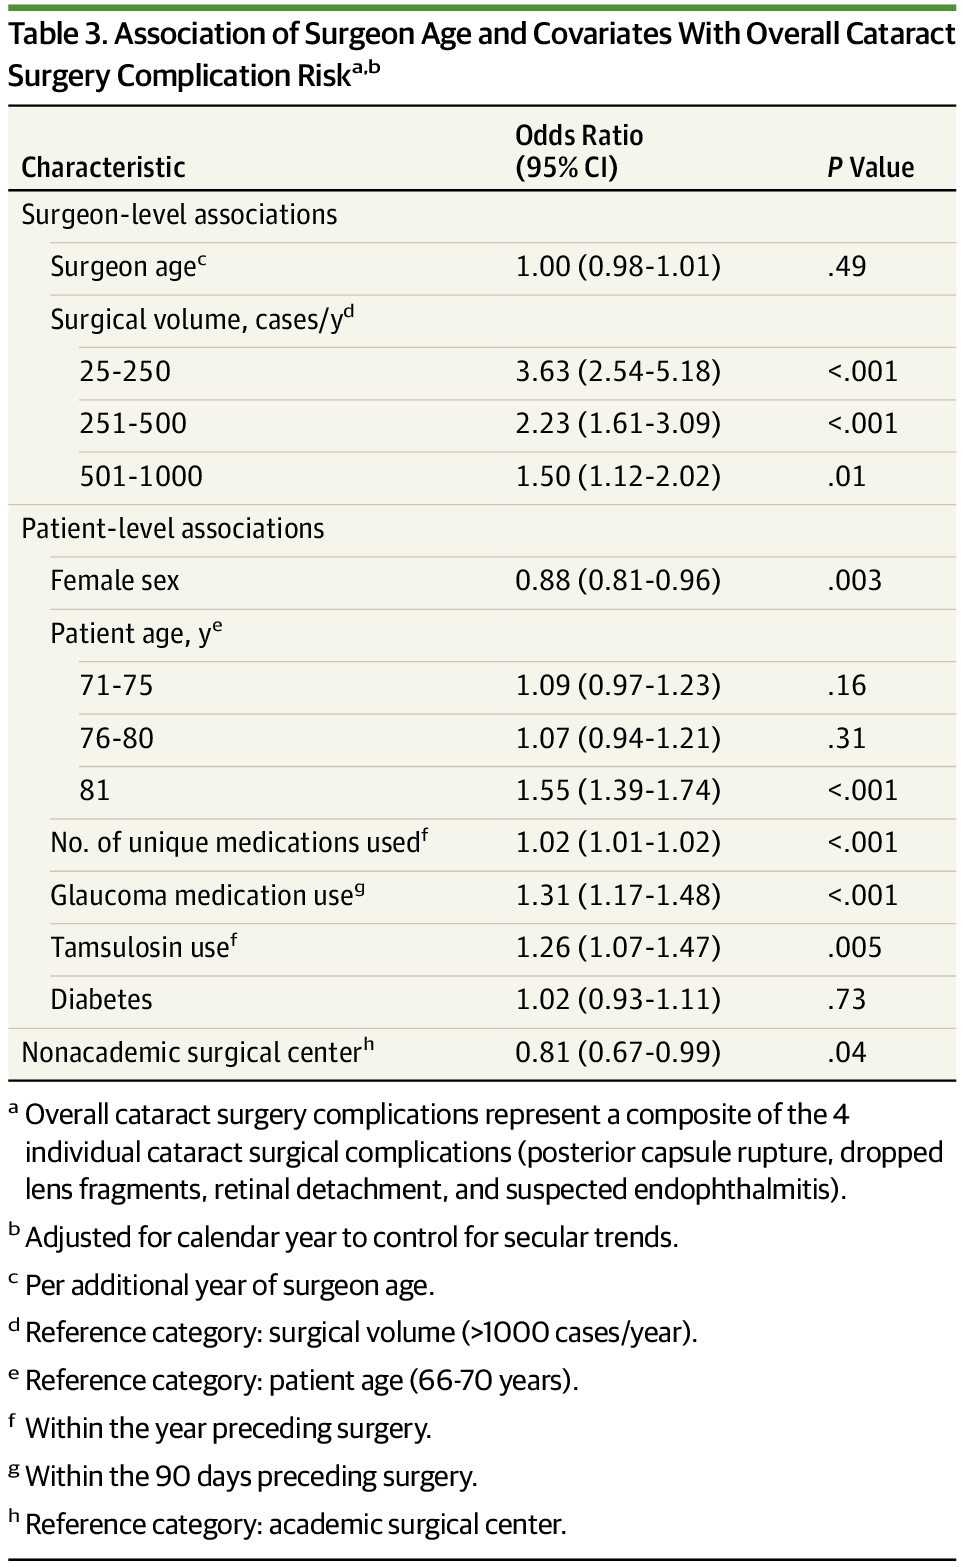 Association Of Cataract Surgical Outcomes With Late Surgeon Career